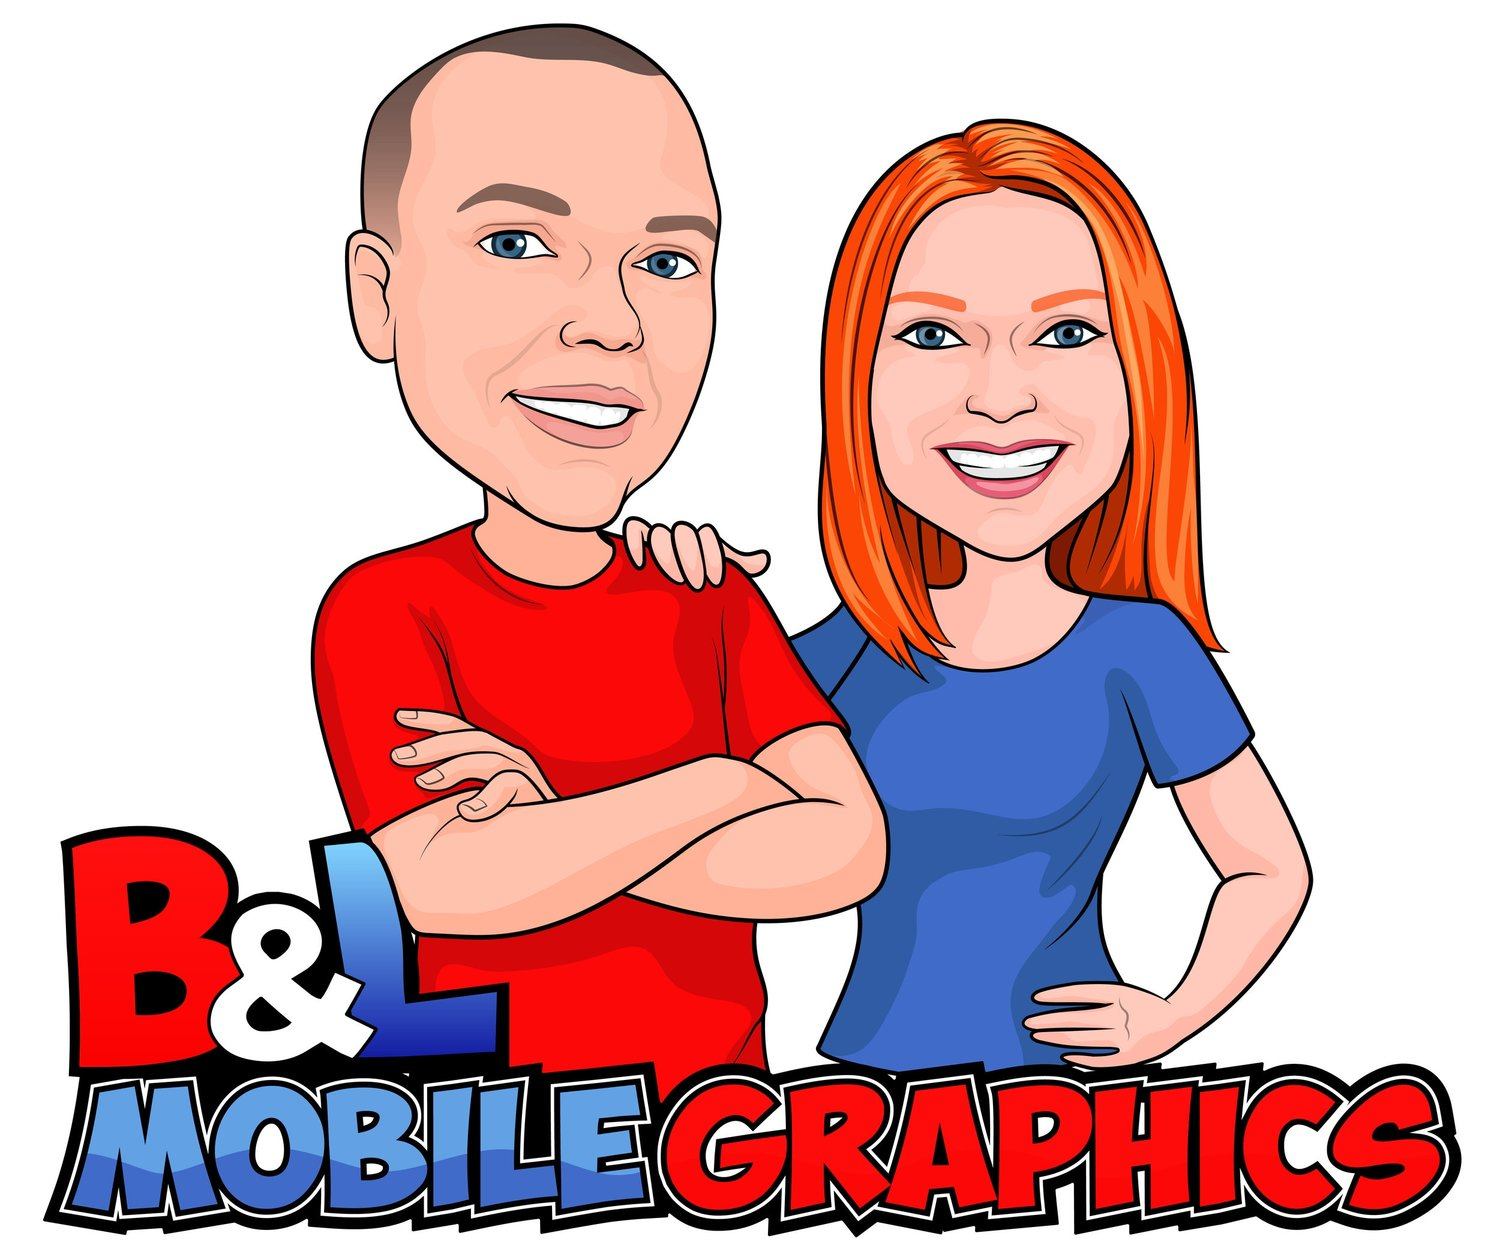 B & L Mobile Graphics